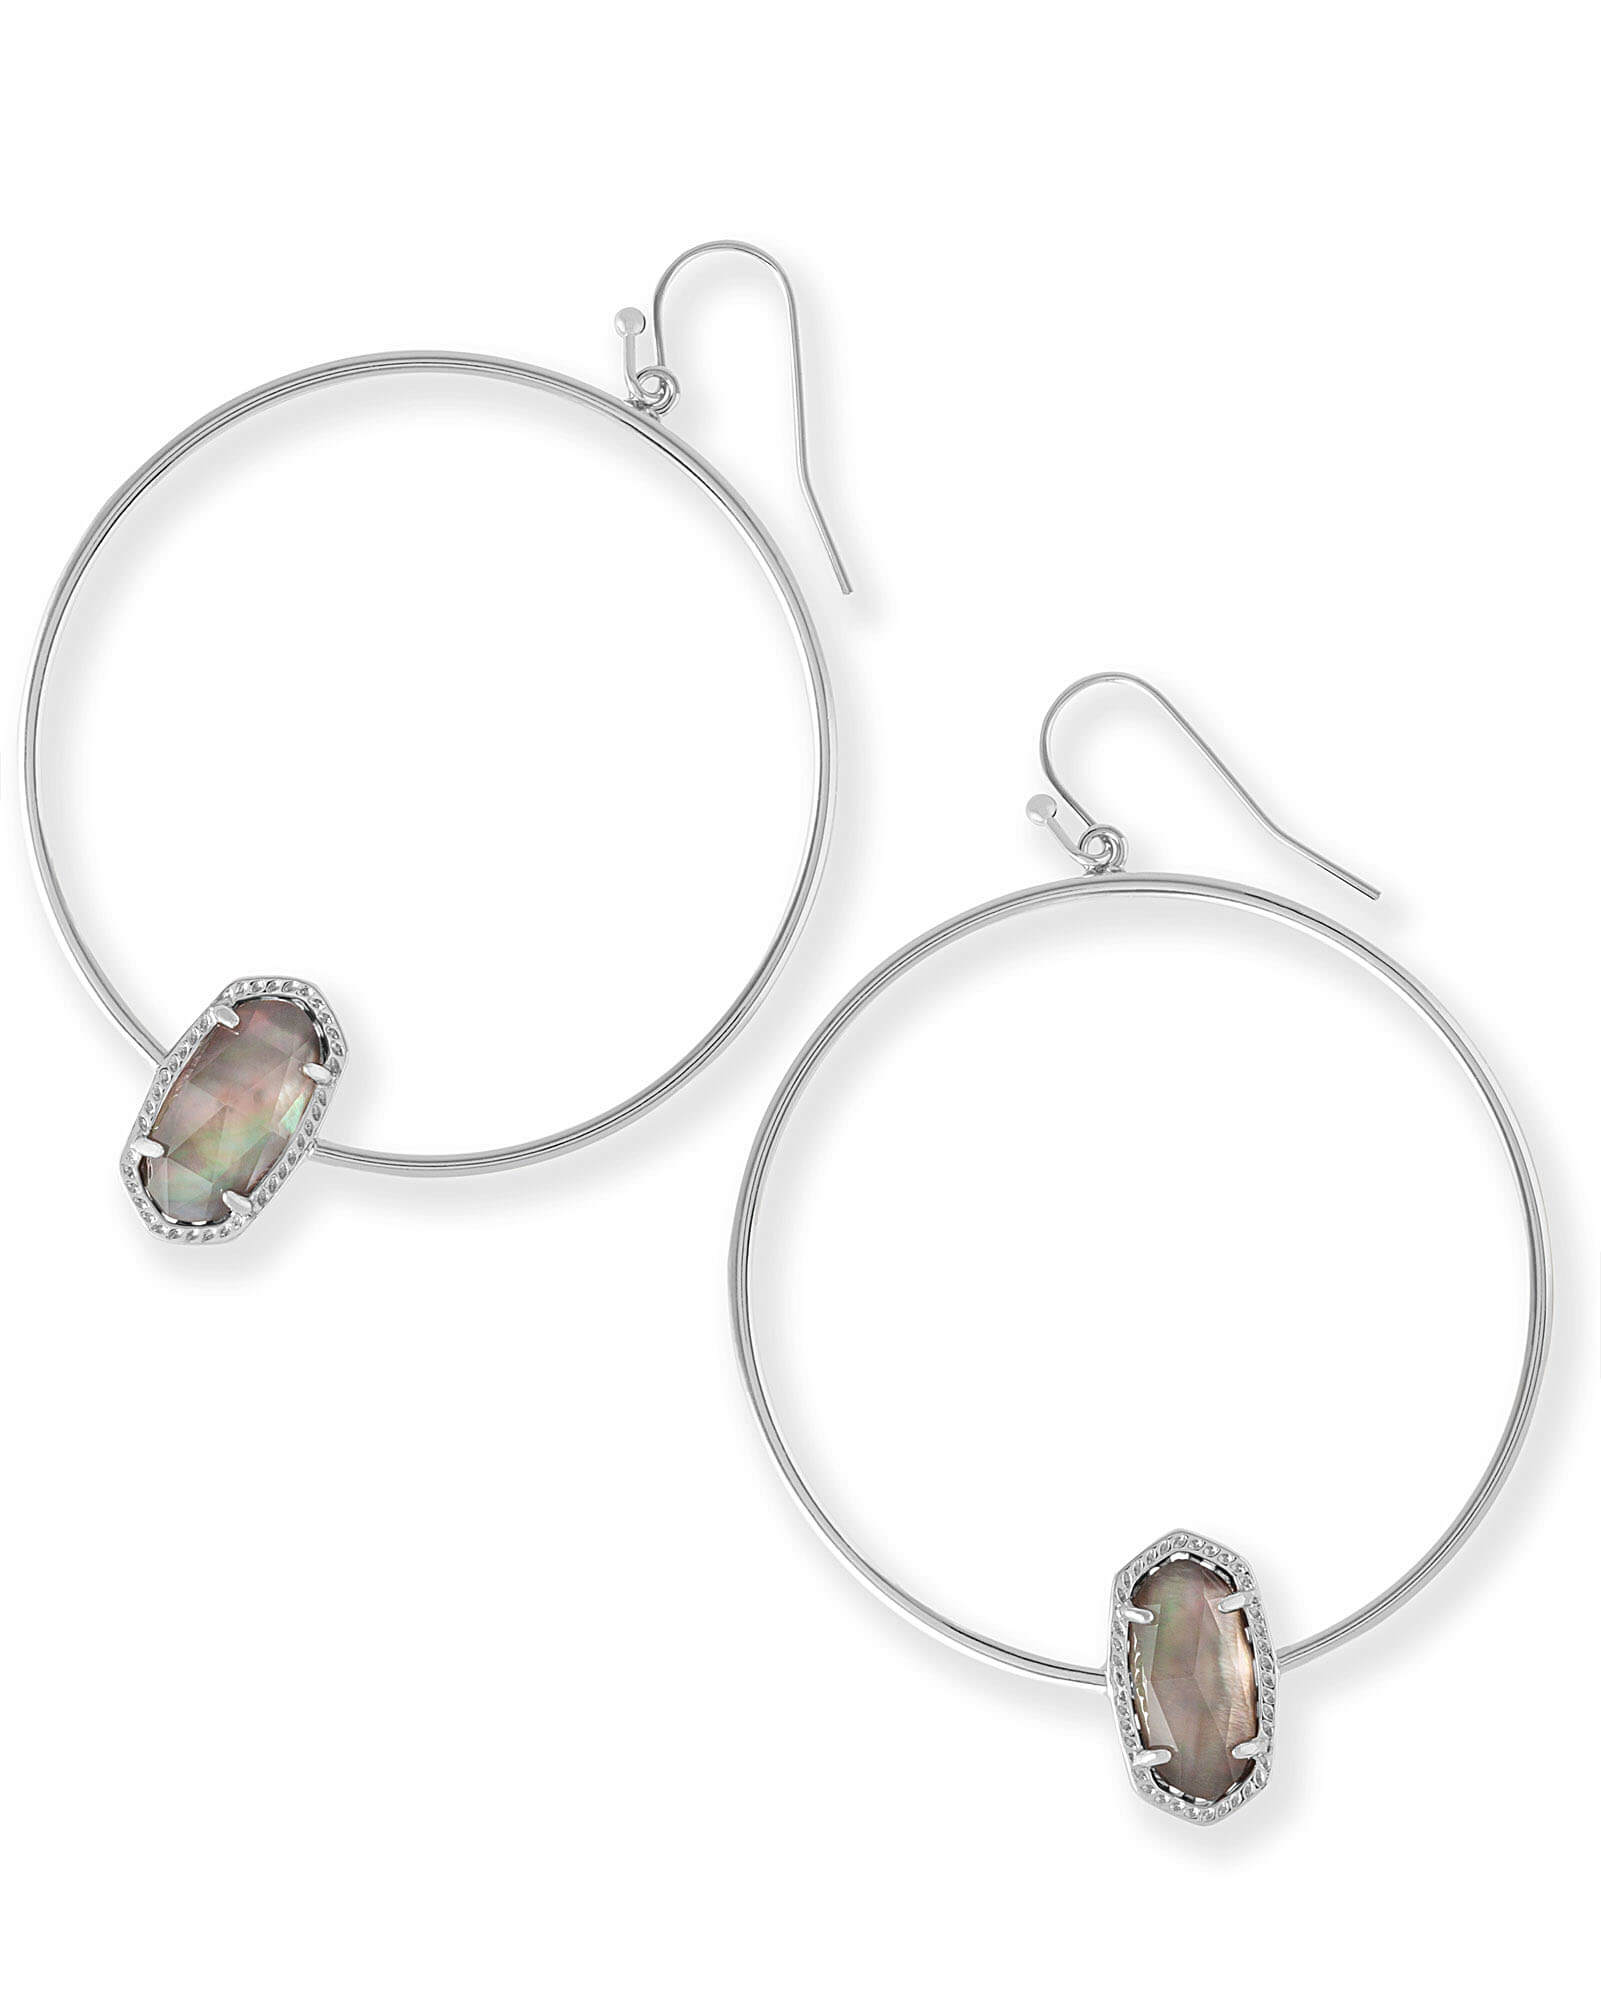 Elora Hoop Earrings in Black Mother of Pearl